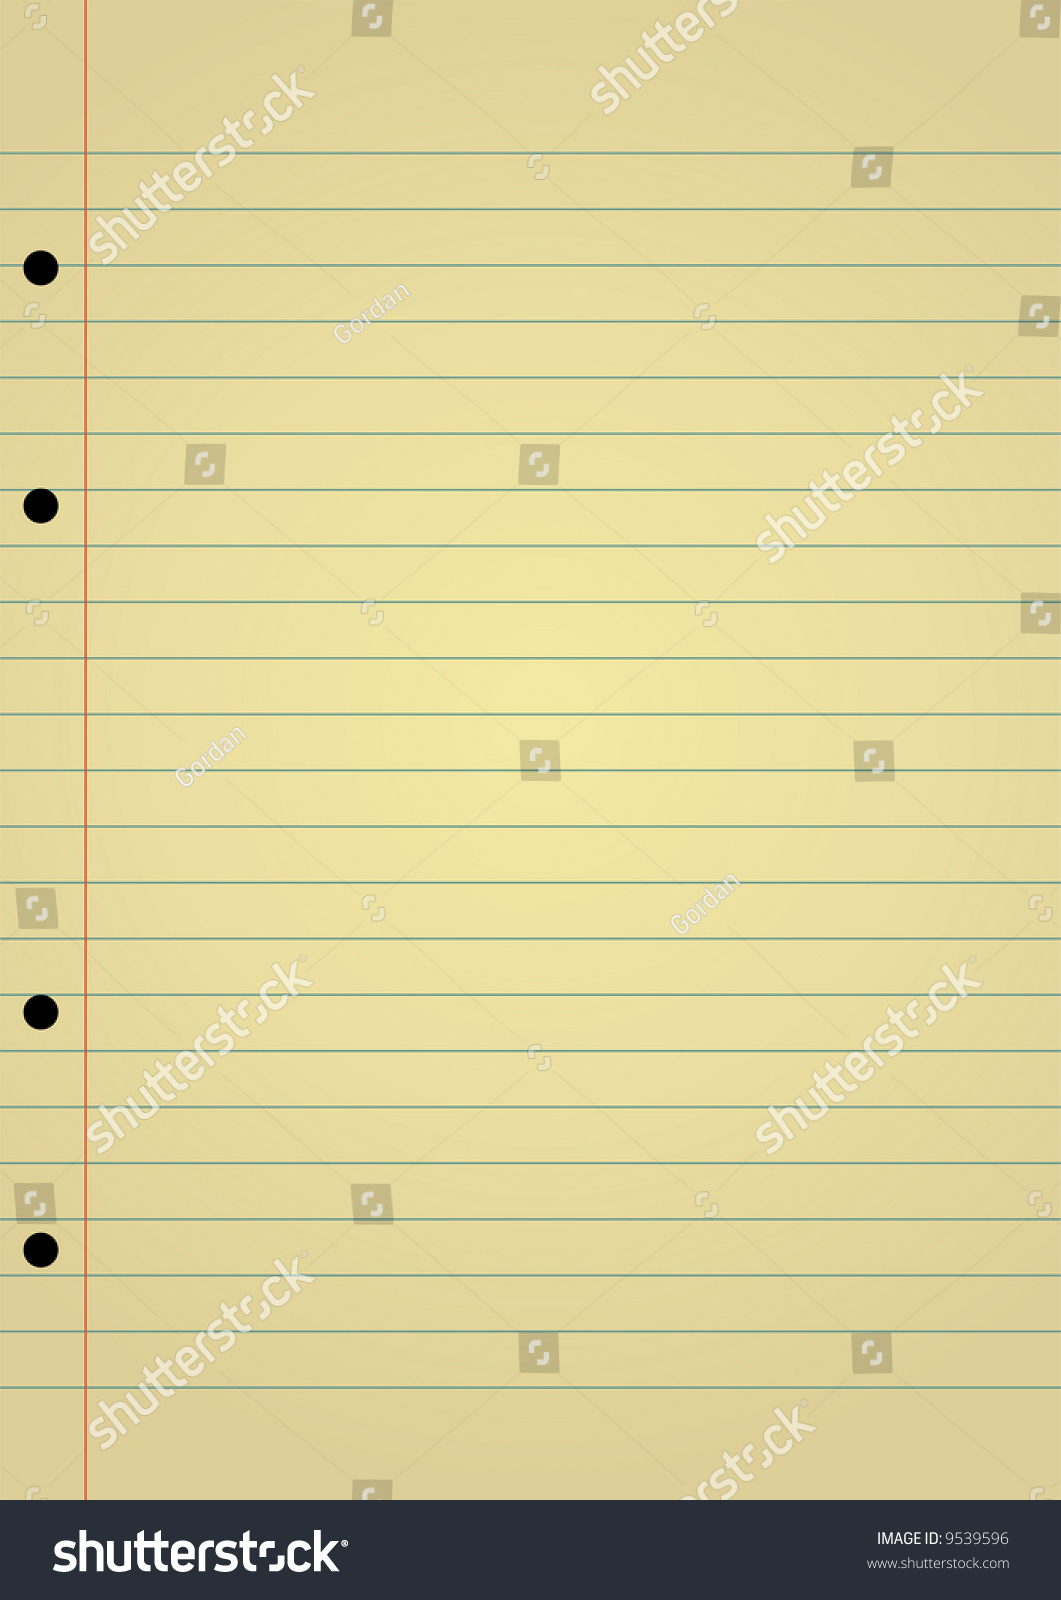 Editable Vector Background Yellow Notebook Paper Stock Vector